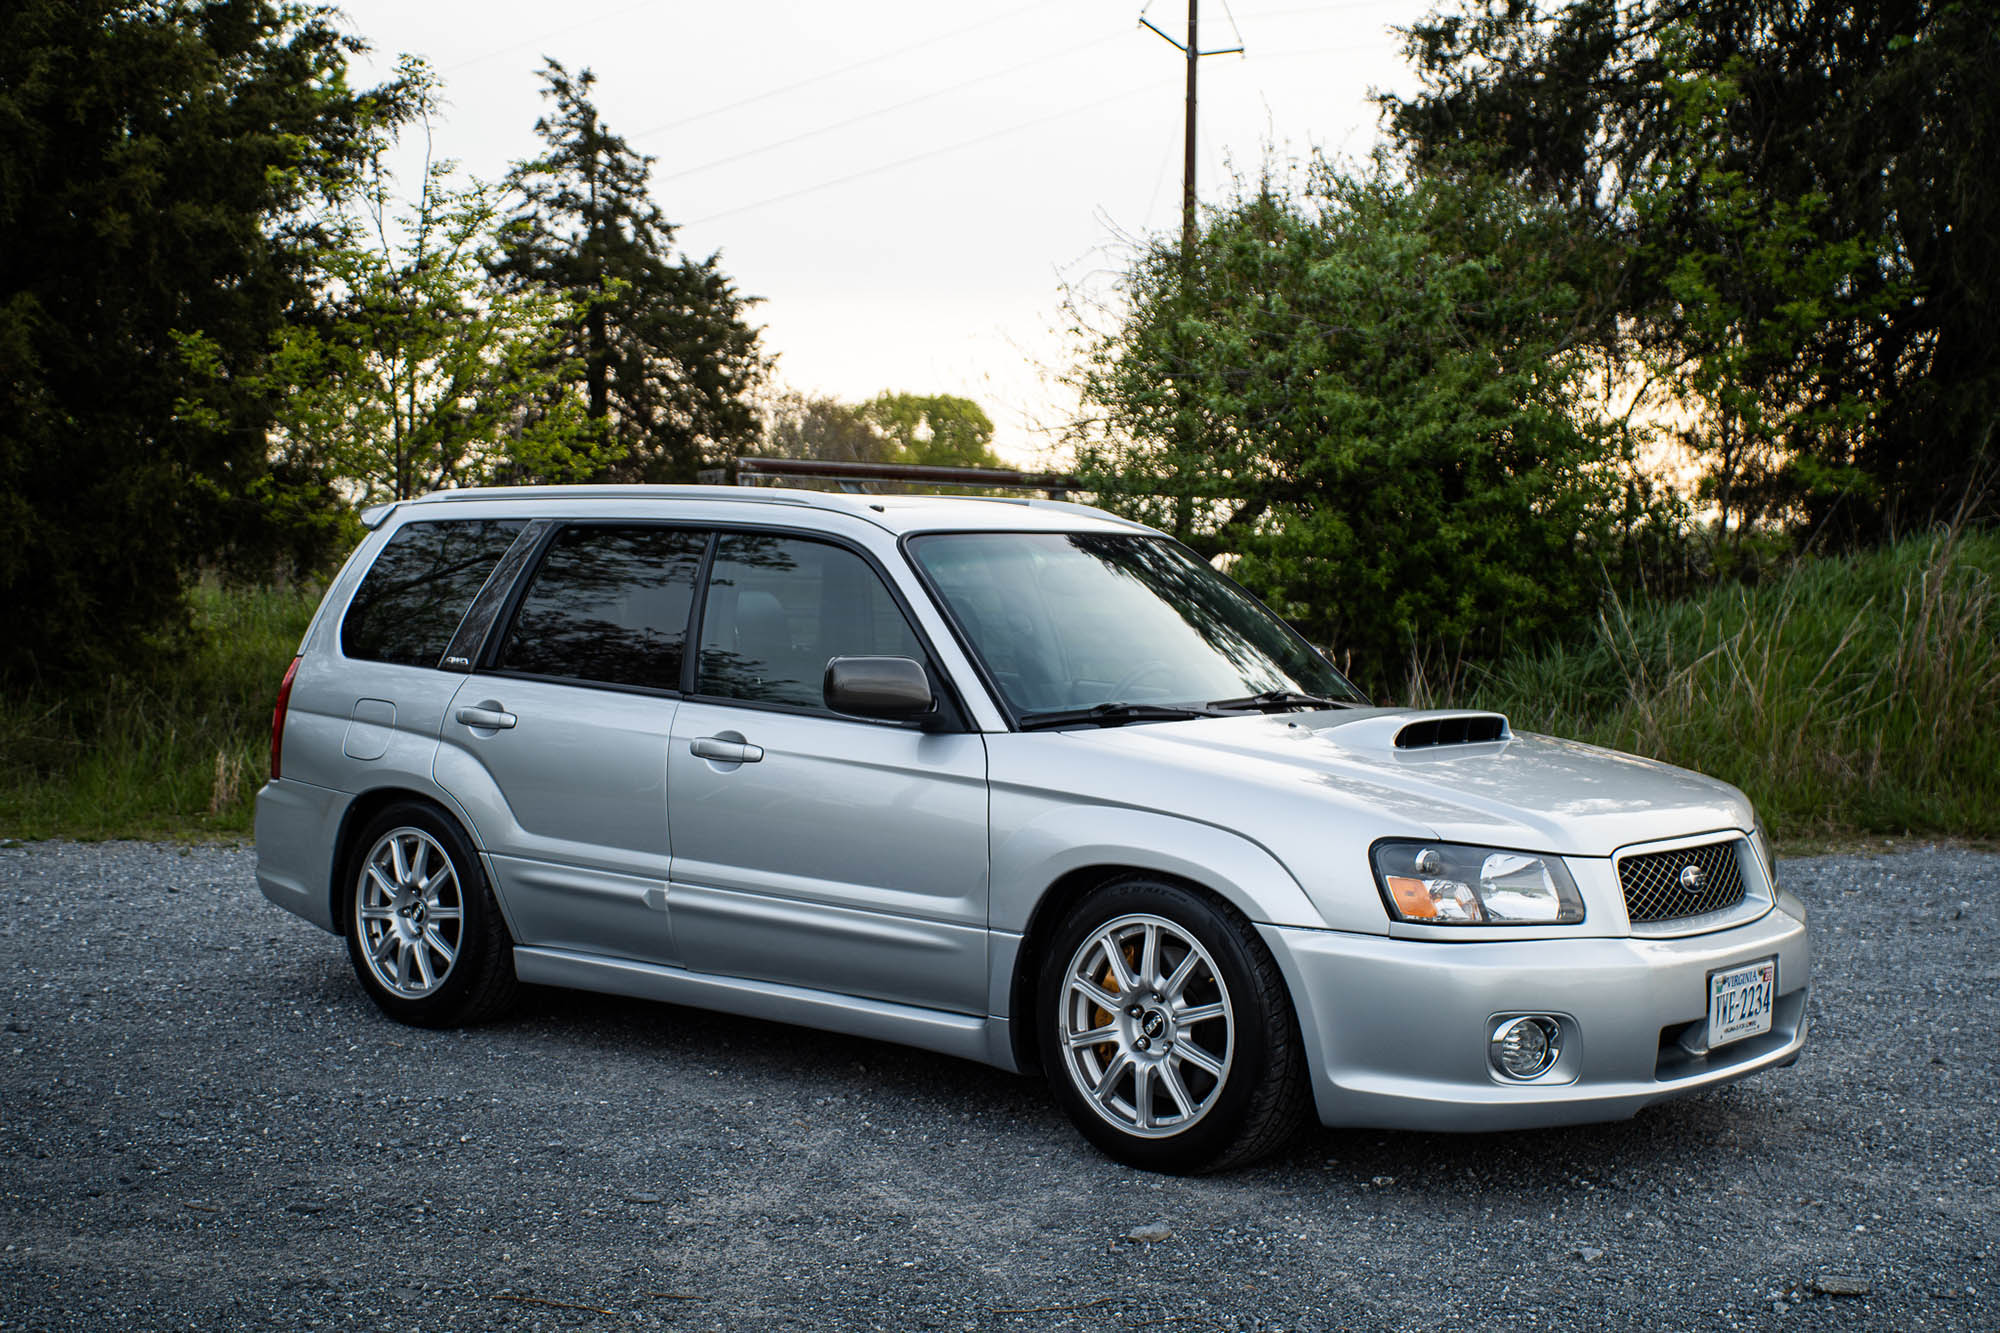 for sale 2004 forester with a turbo ej257 flat four engine swap depot turbo ej257 flat four engine swap depot